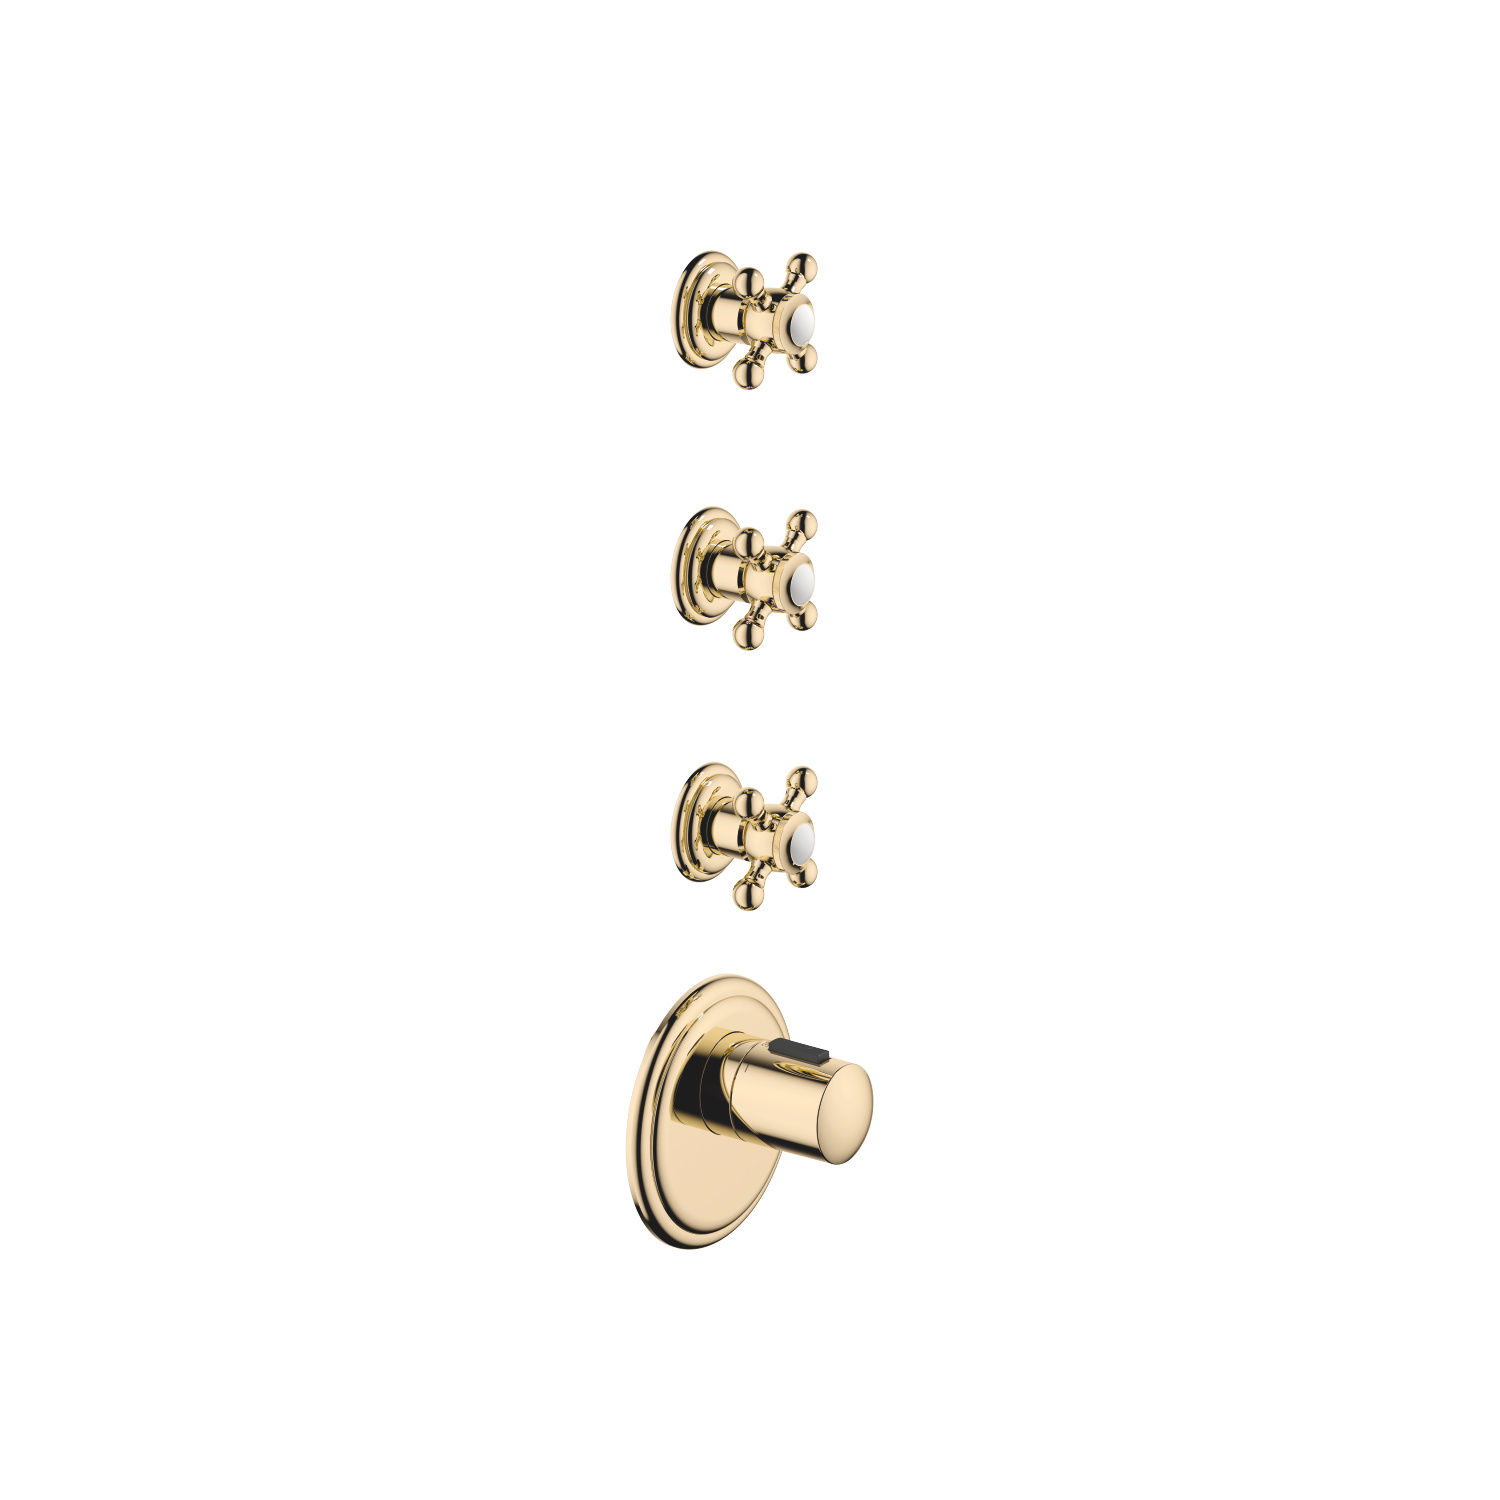 xTOOL Thermostat module with 3 valves - Durabrass